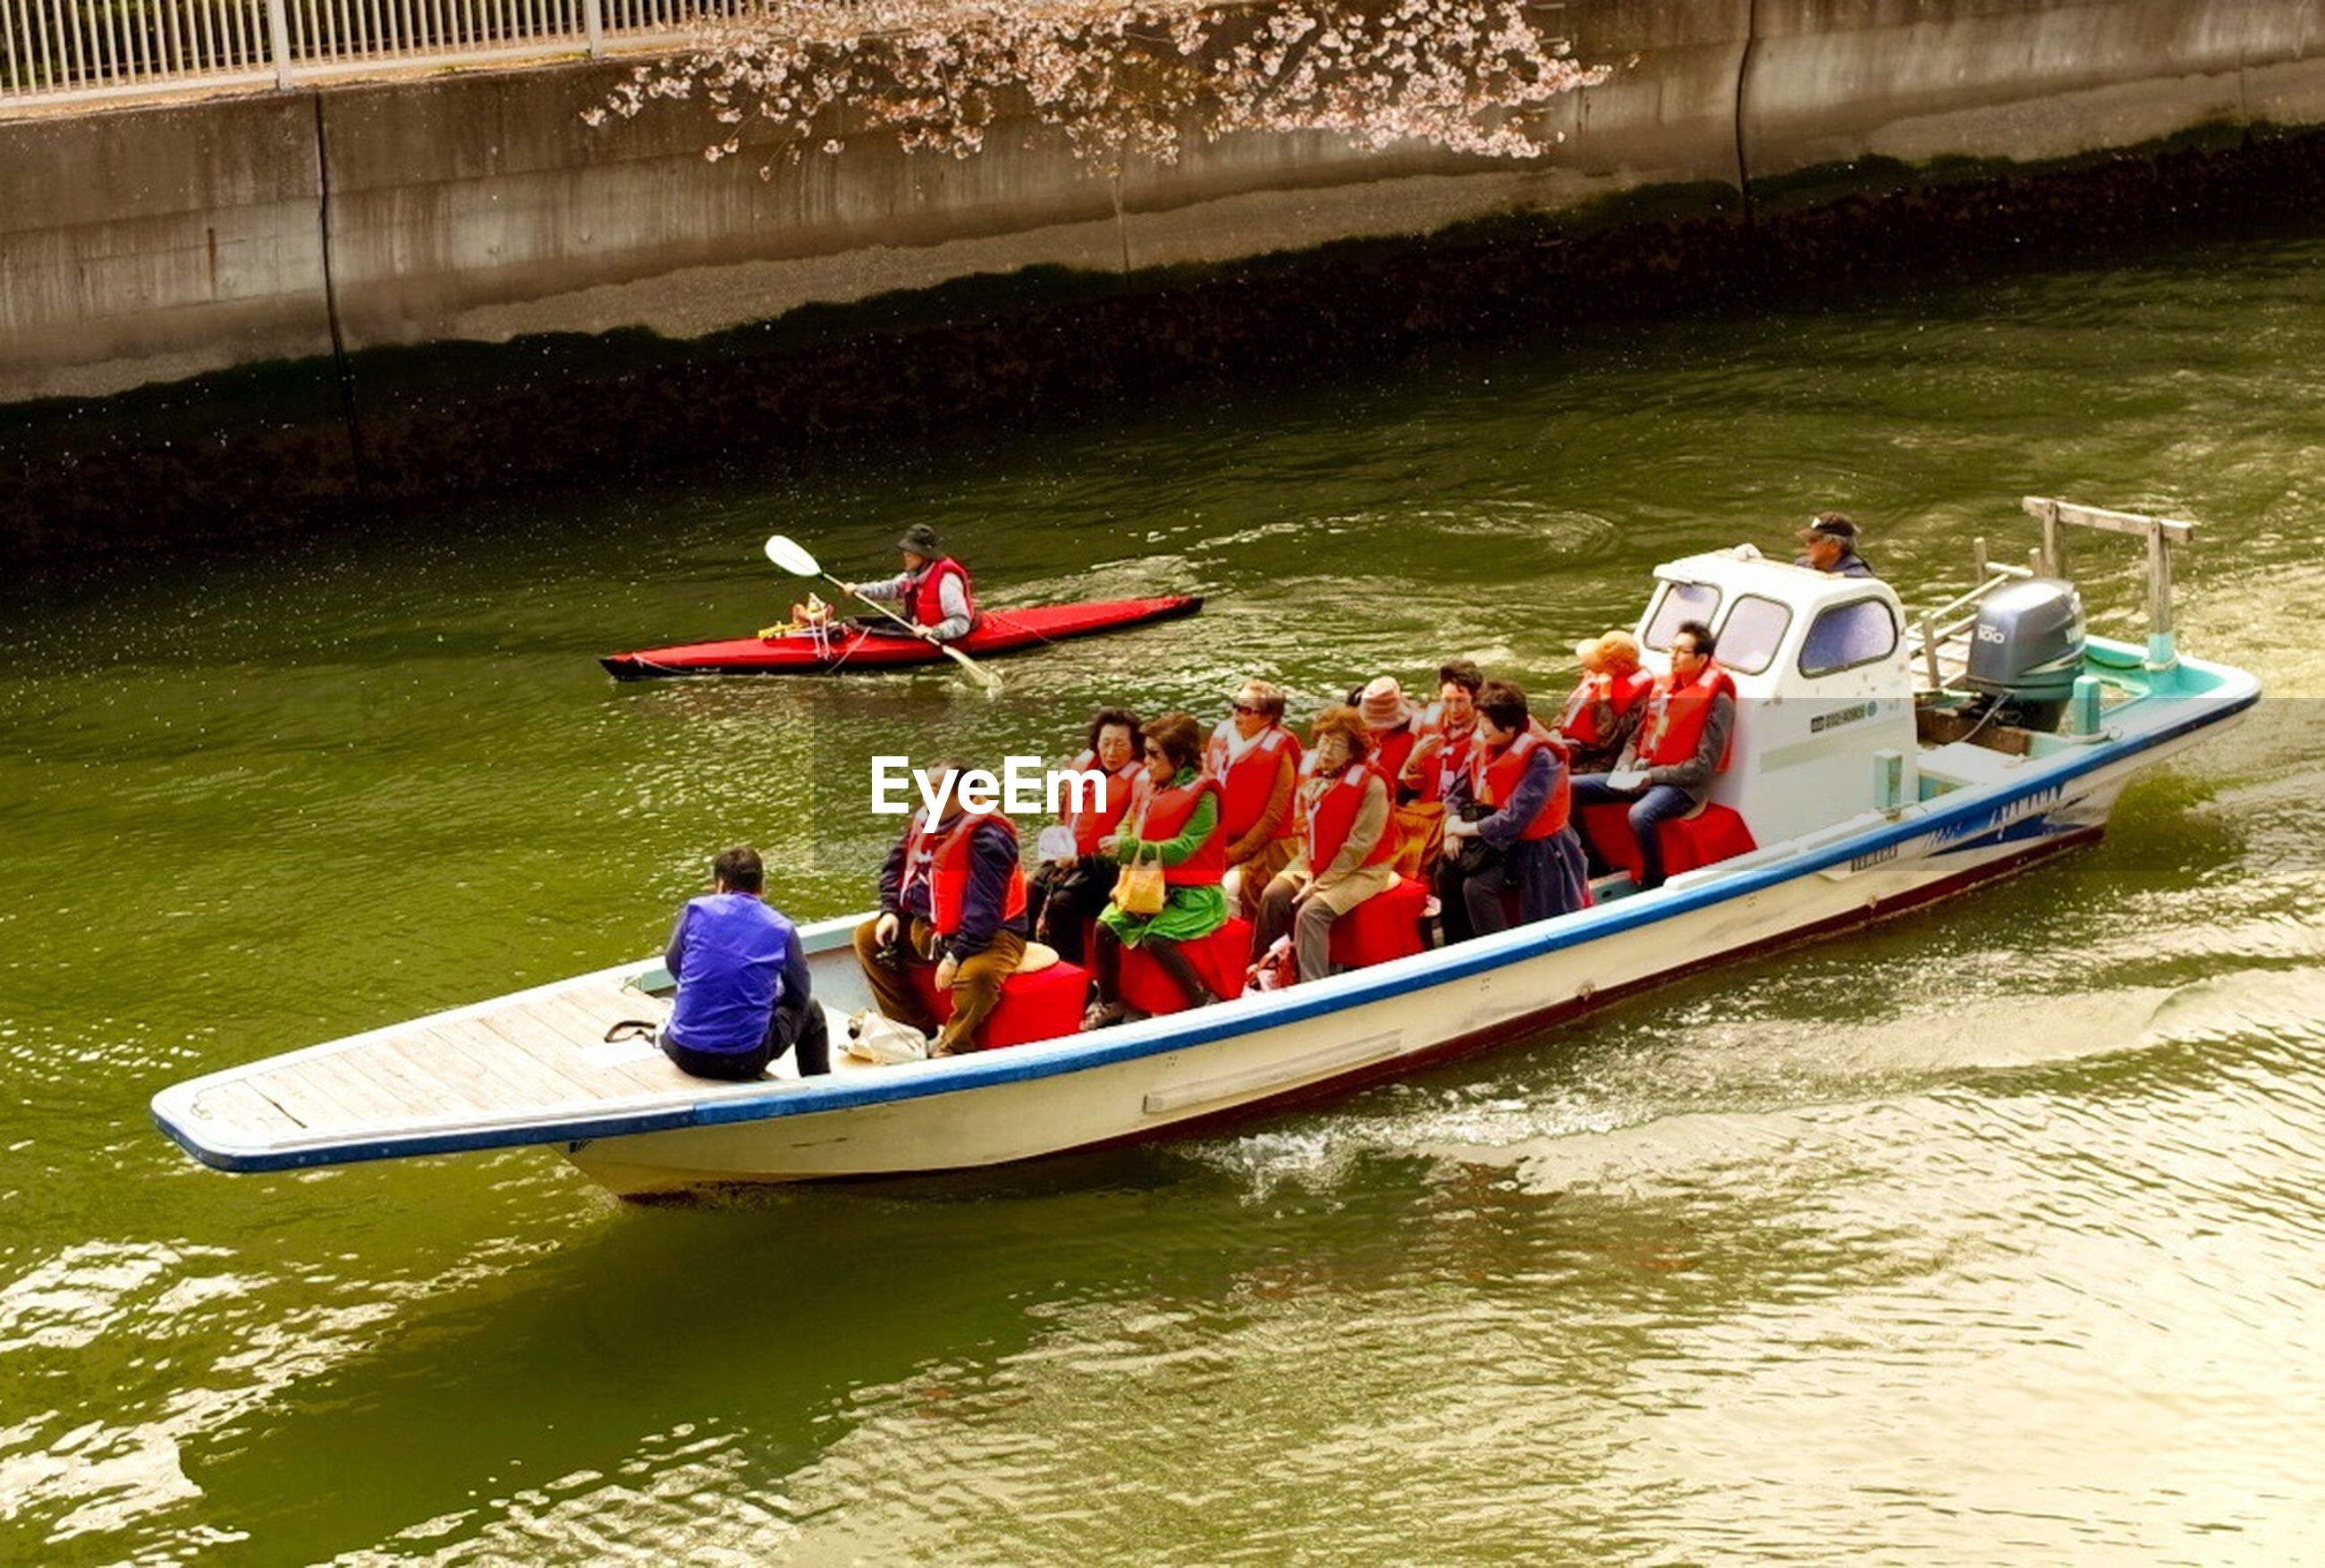 water, lifestyles, men, leisure activity, nautical vessel, transportation, person, boat, sitting, mode of transport, river, large group of people, togetherness, lake, vacations, travel, medium group of people, high angle view